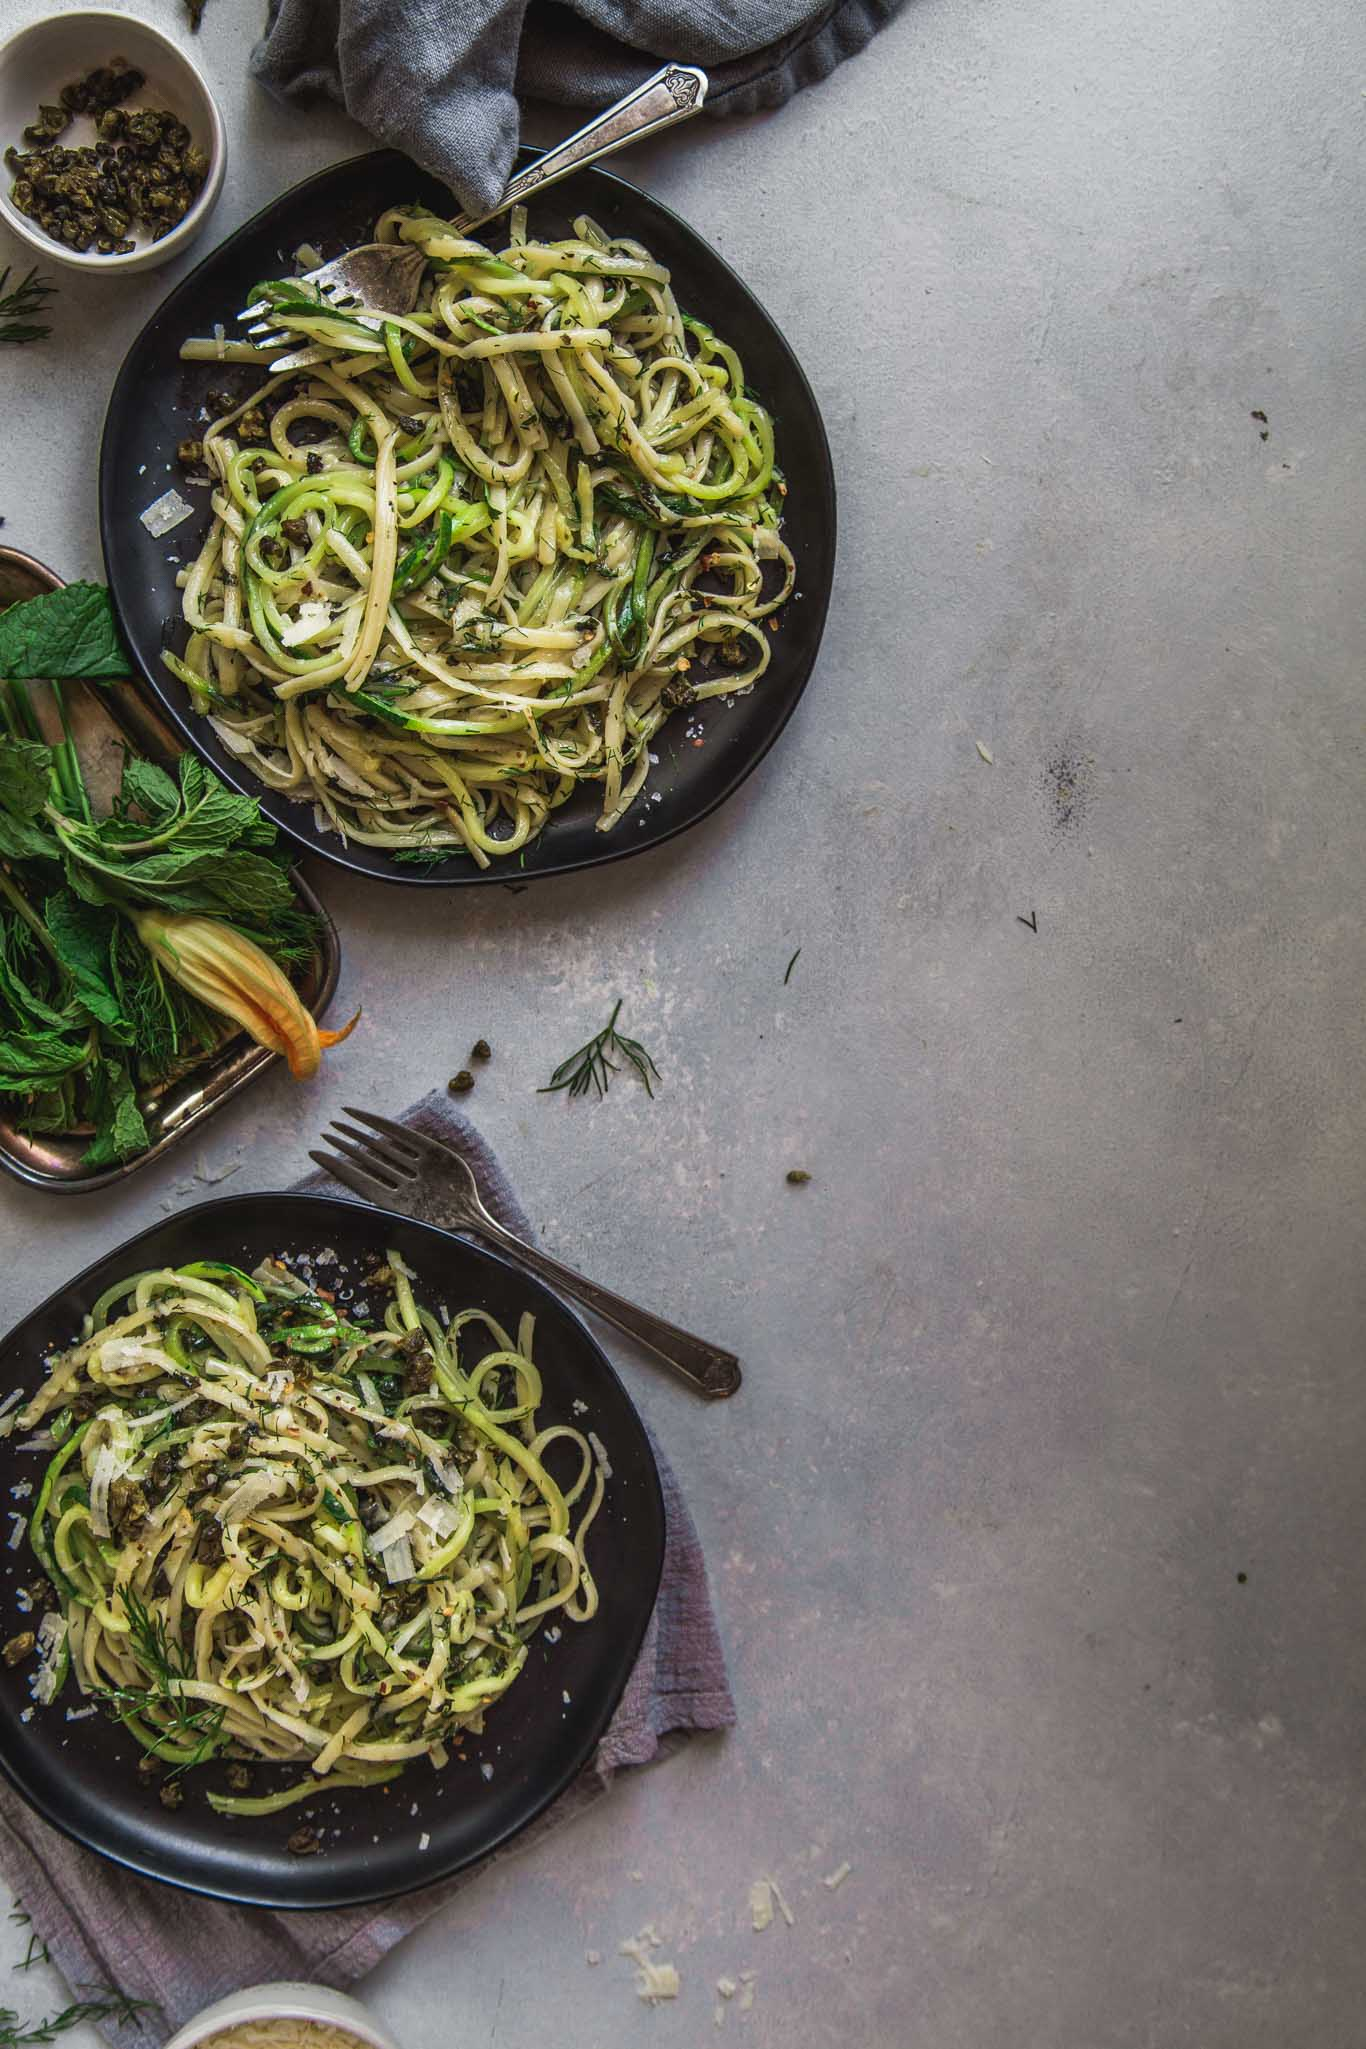 Two plates of zucchini noodles